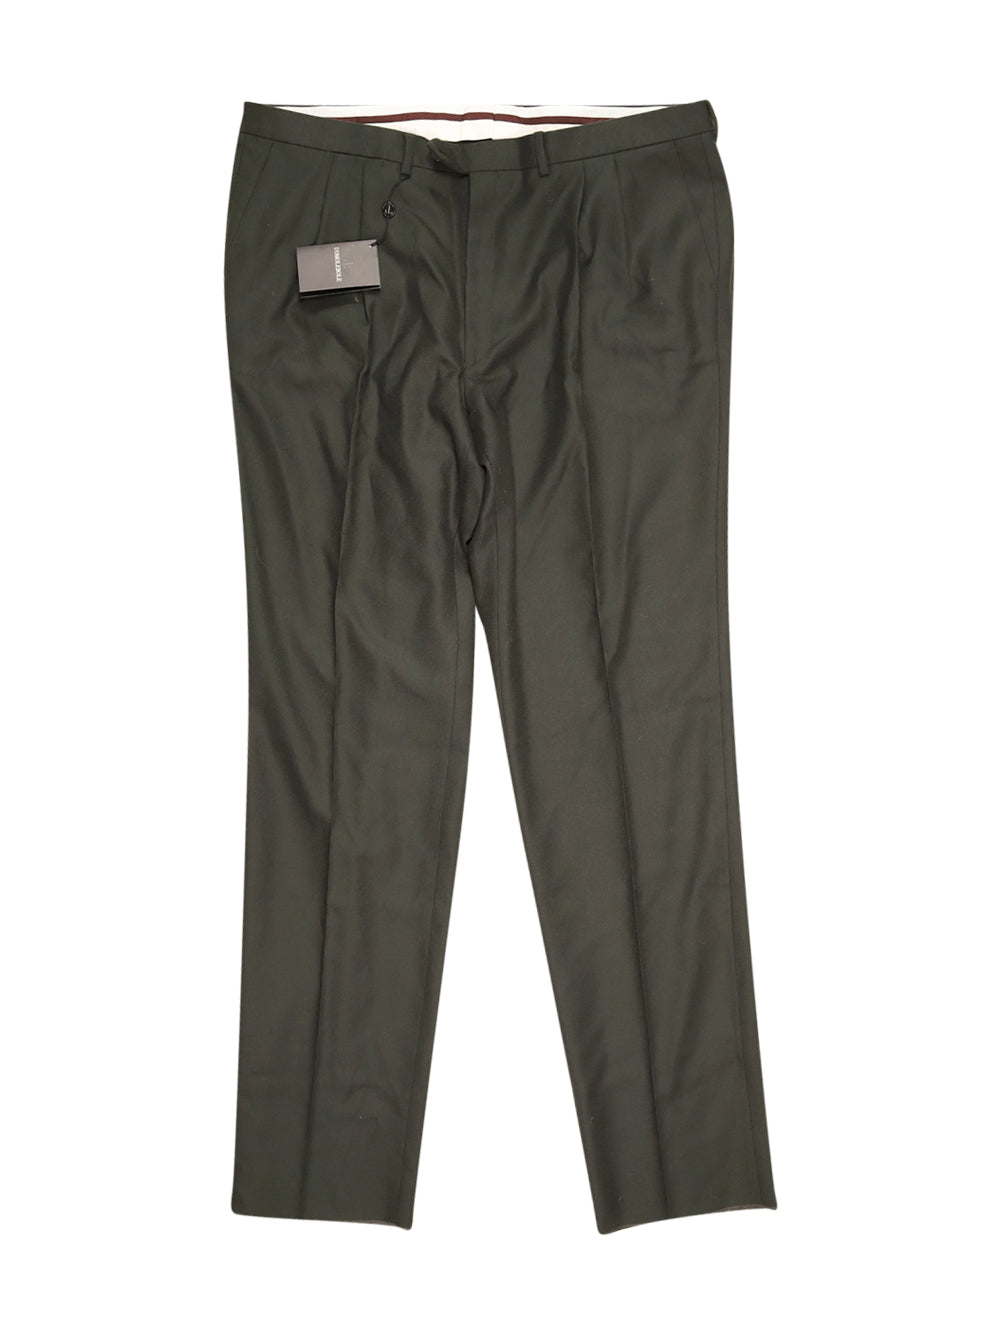 Front photo of Unworn uomo lebole Green Man's trousers - size > 50/XXXXL